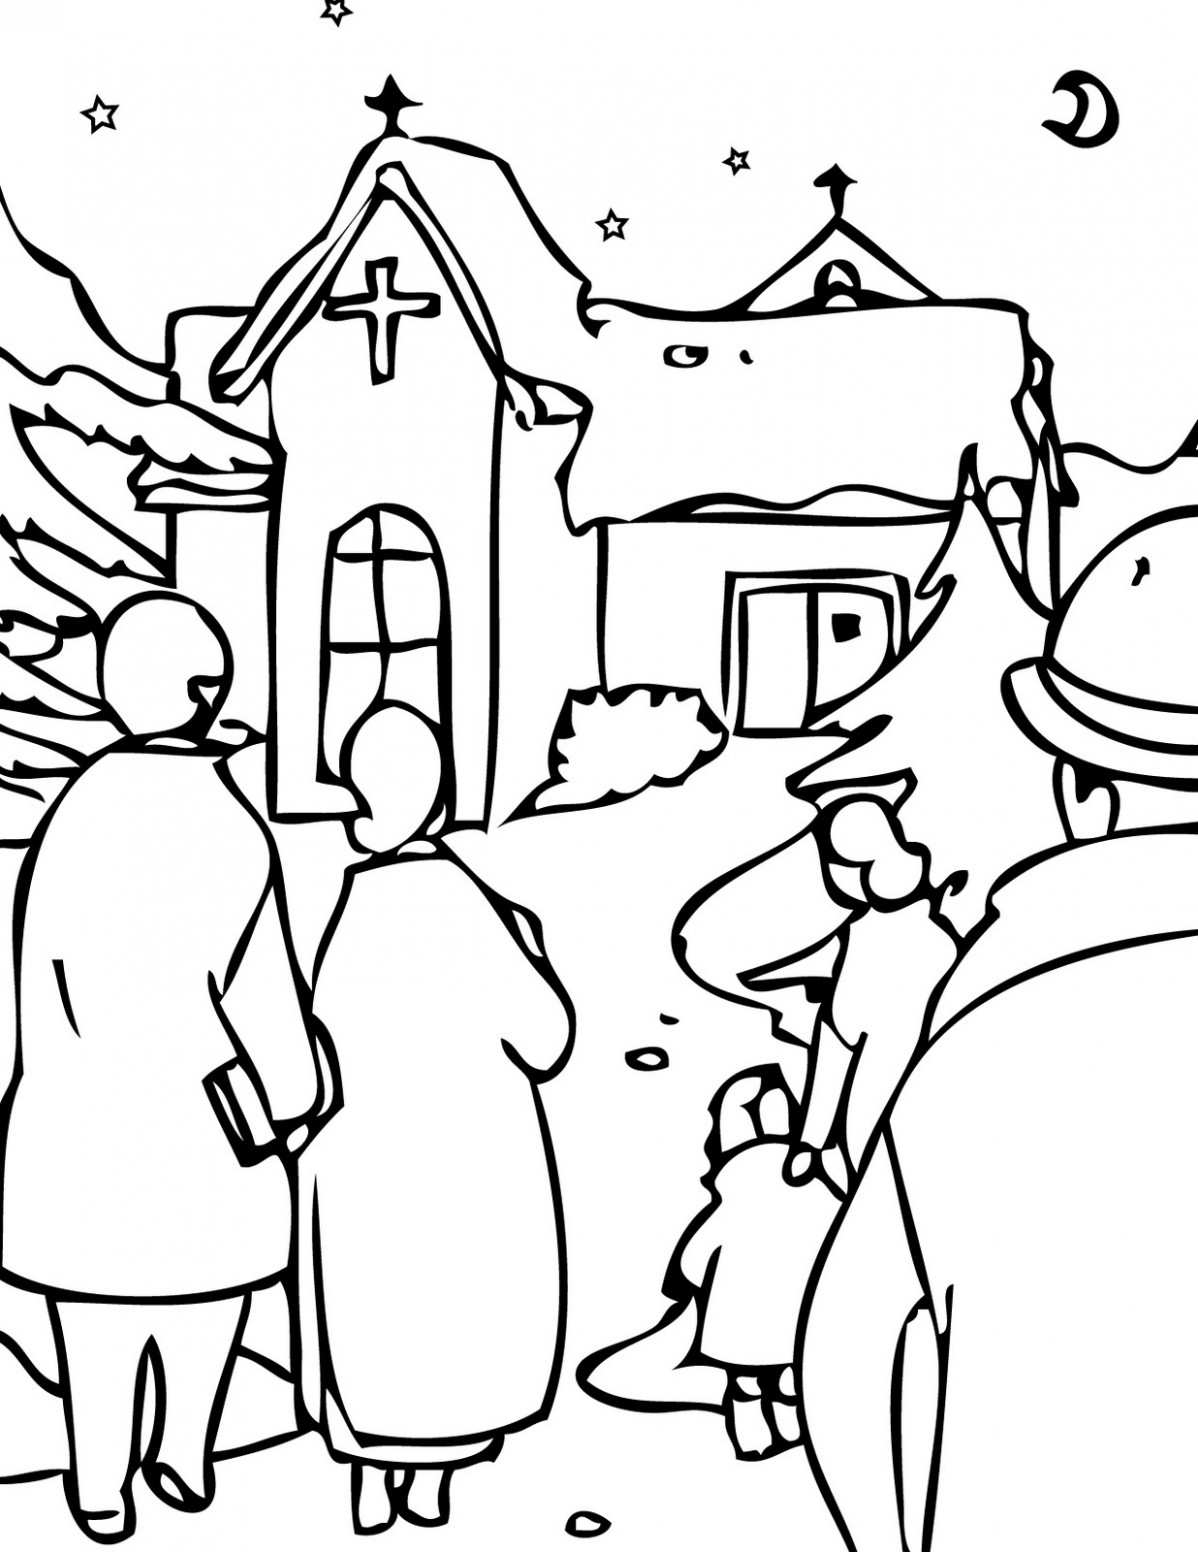 Christmas Eve Coloring Pages | Learn To Coloring – Christmas Eve Coloring Sheets